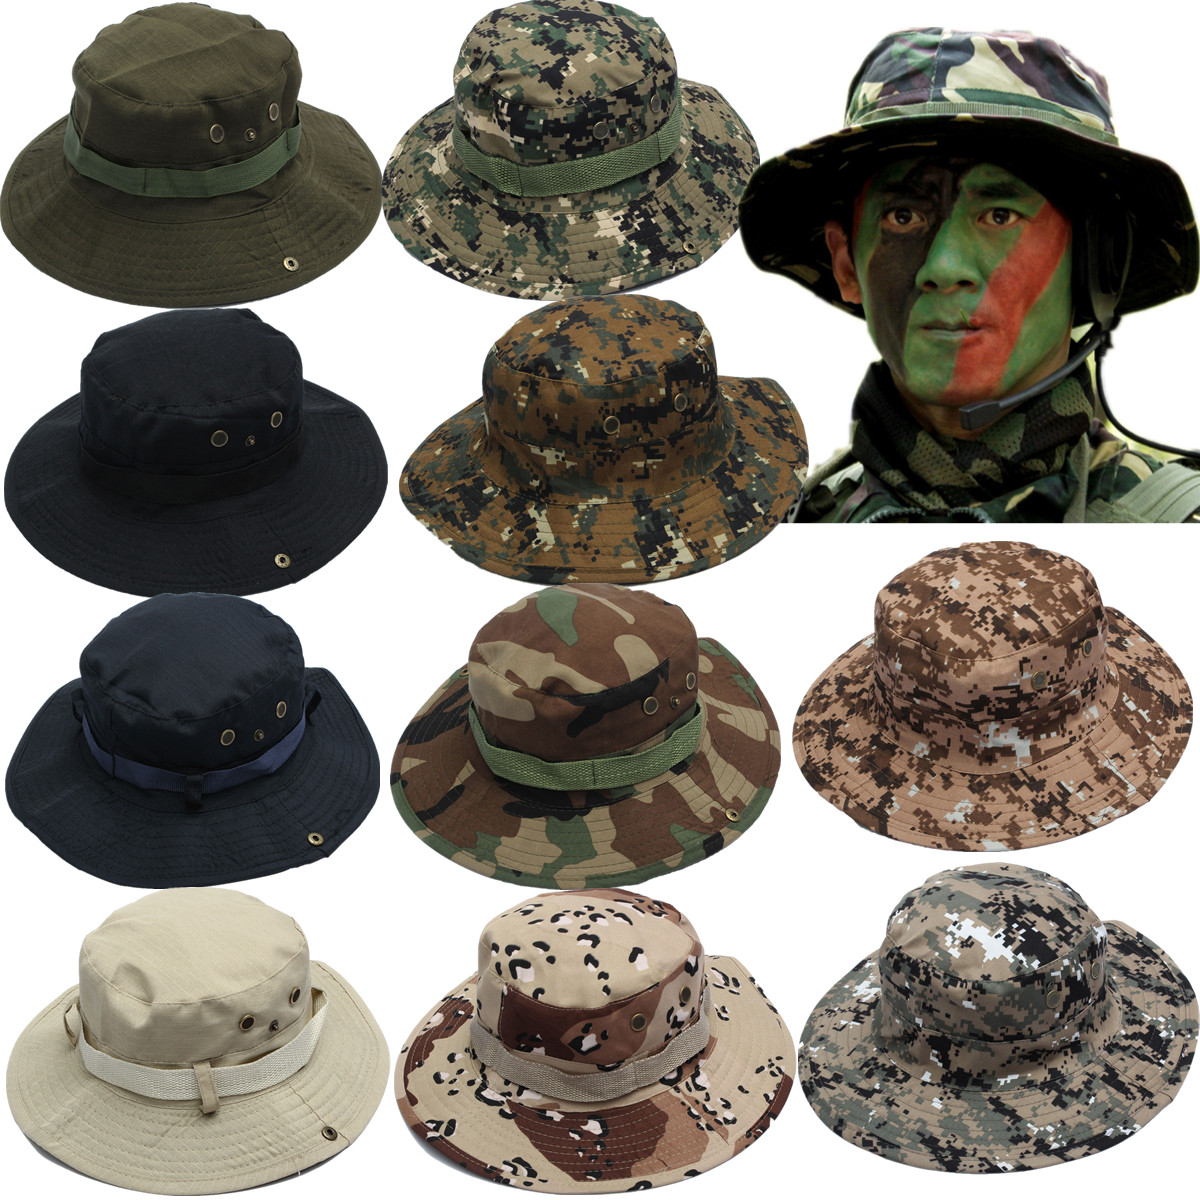 Unisex Outdoor Hunting Fishing Bucket Hat Boonie Wide Brim Sun Camo ... 809ed4a545f